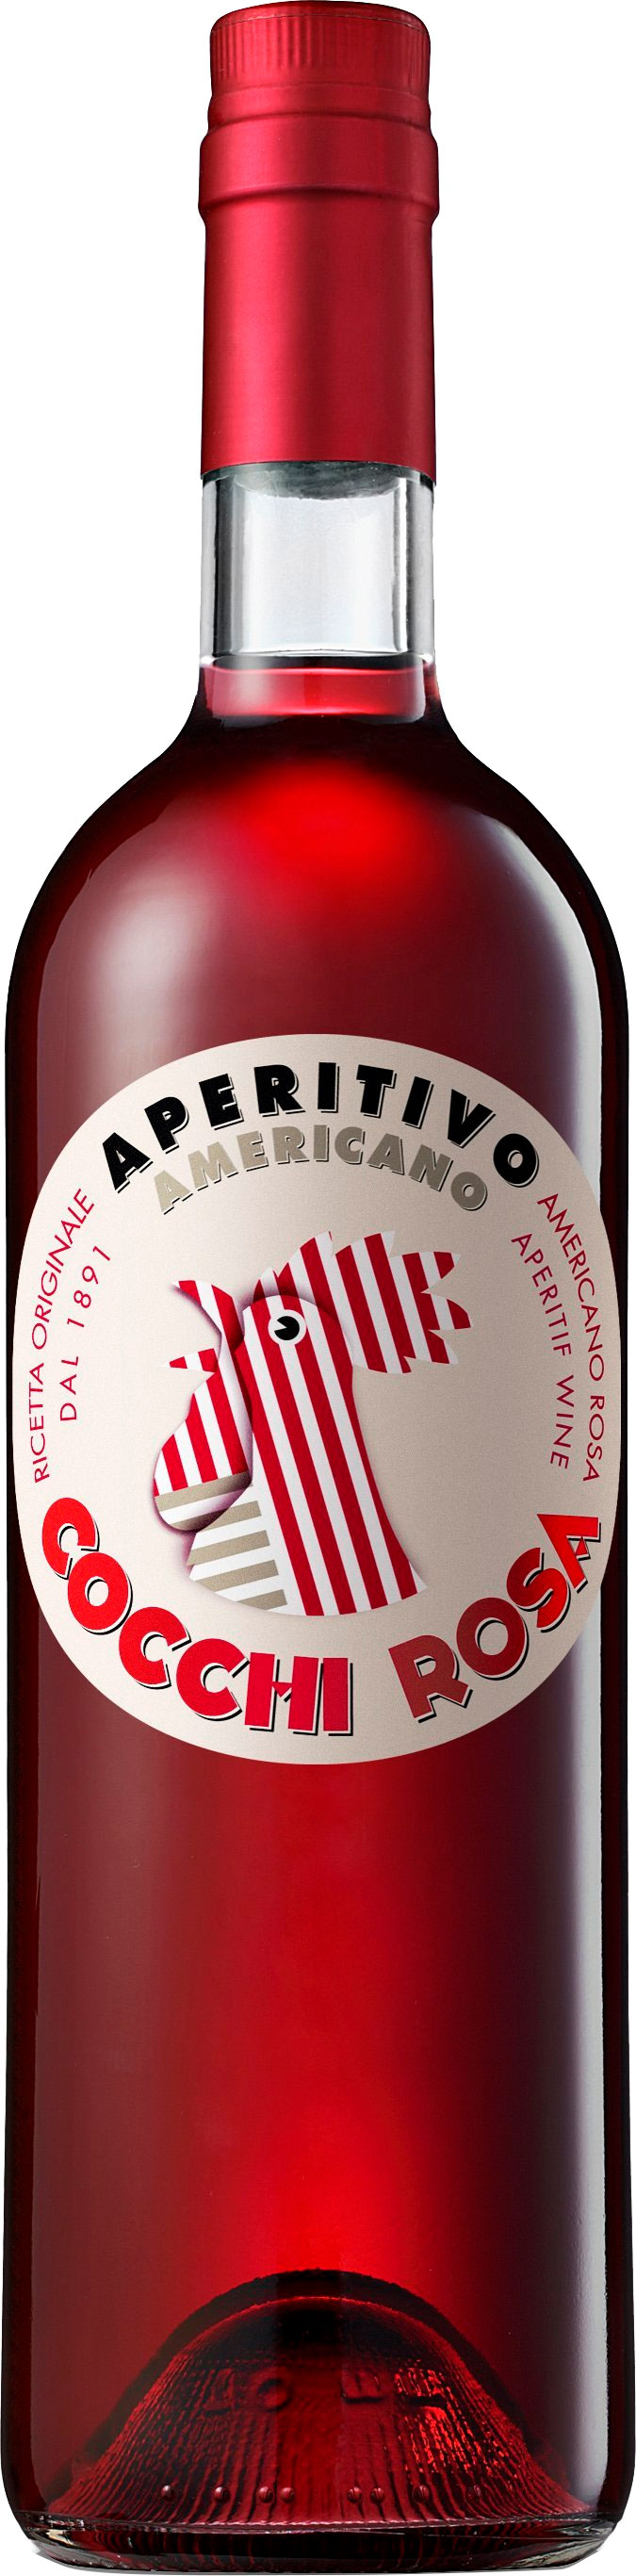 Stockists of Cocchi - Americano Rosa 75cl Bottle